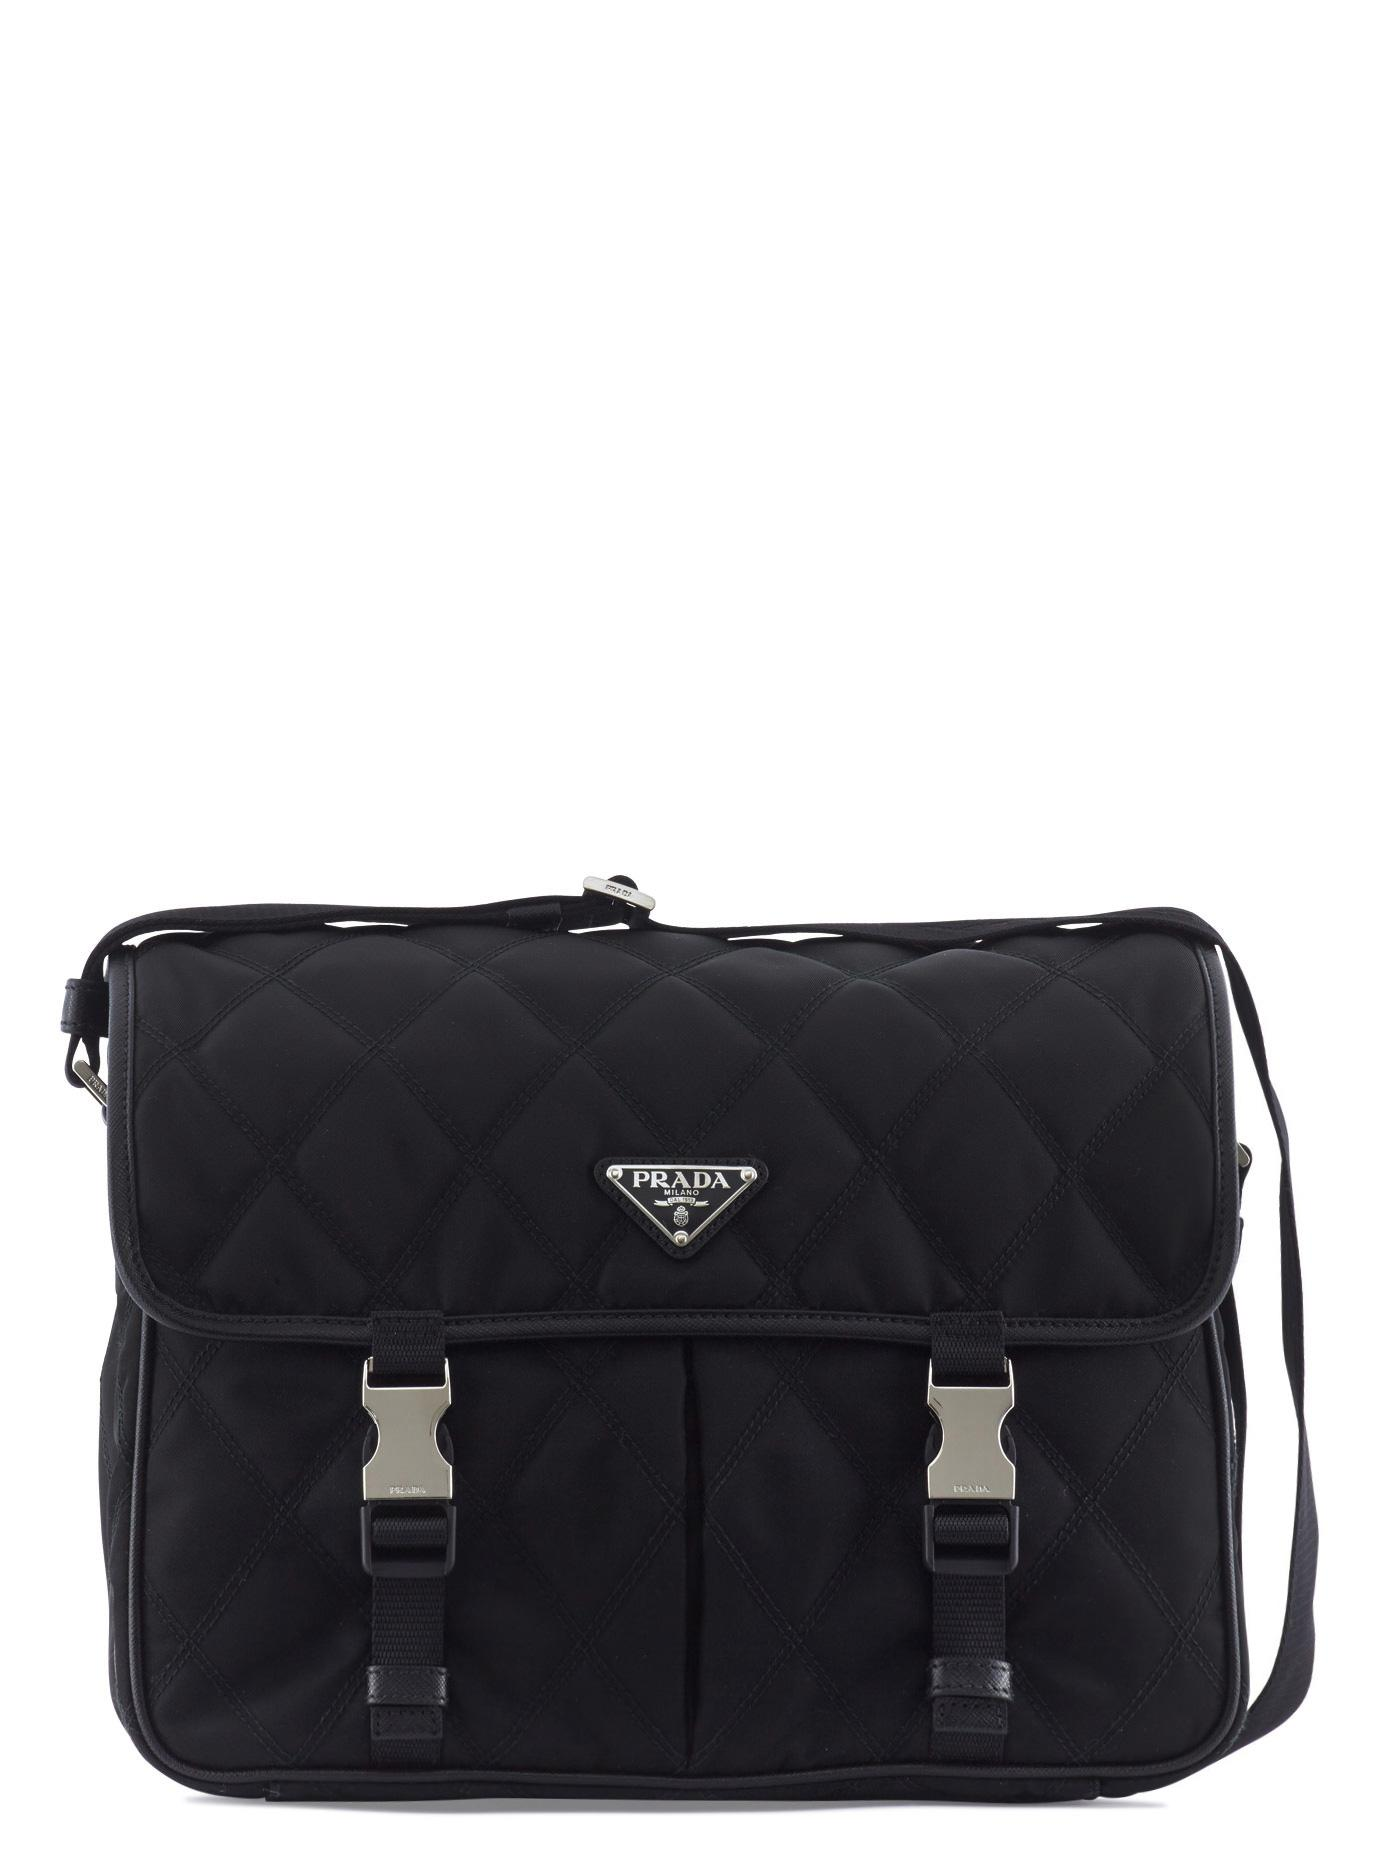 e1258c5eab37 Prada Quilted Nylon And Leather Messenger Bag in Black for Men   Lyst